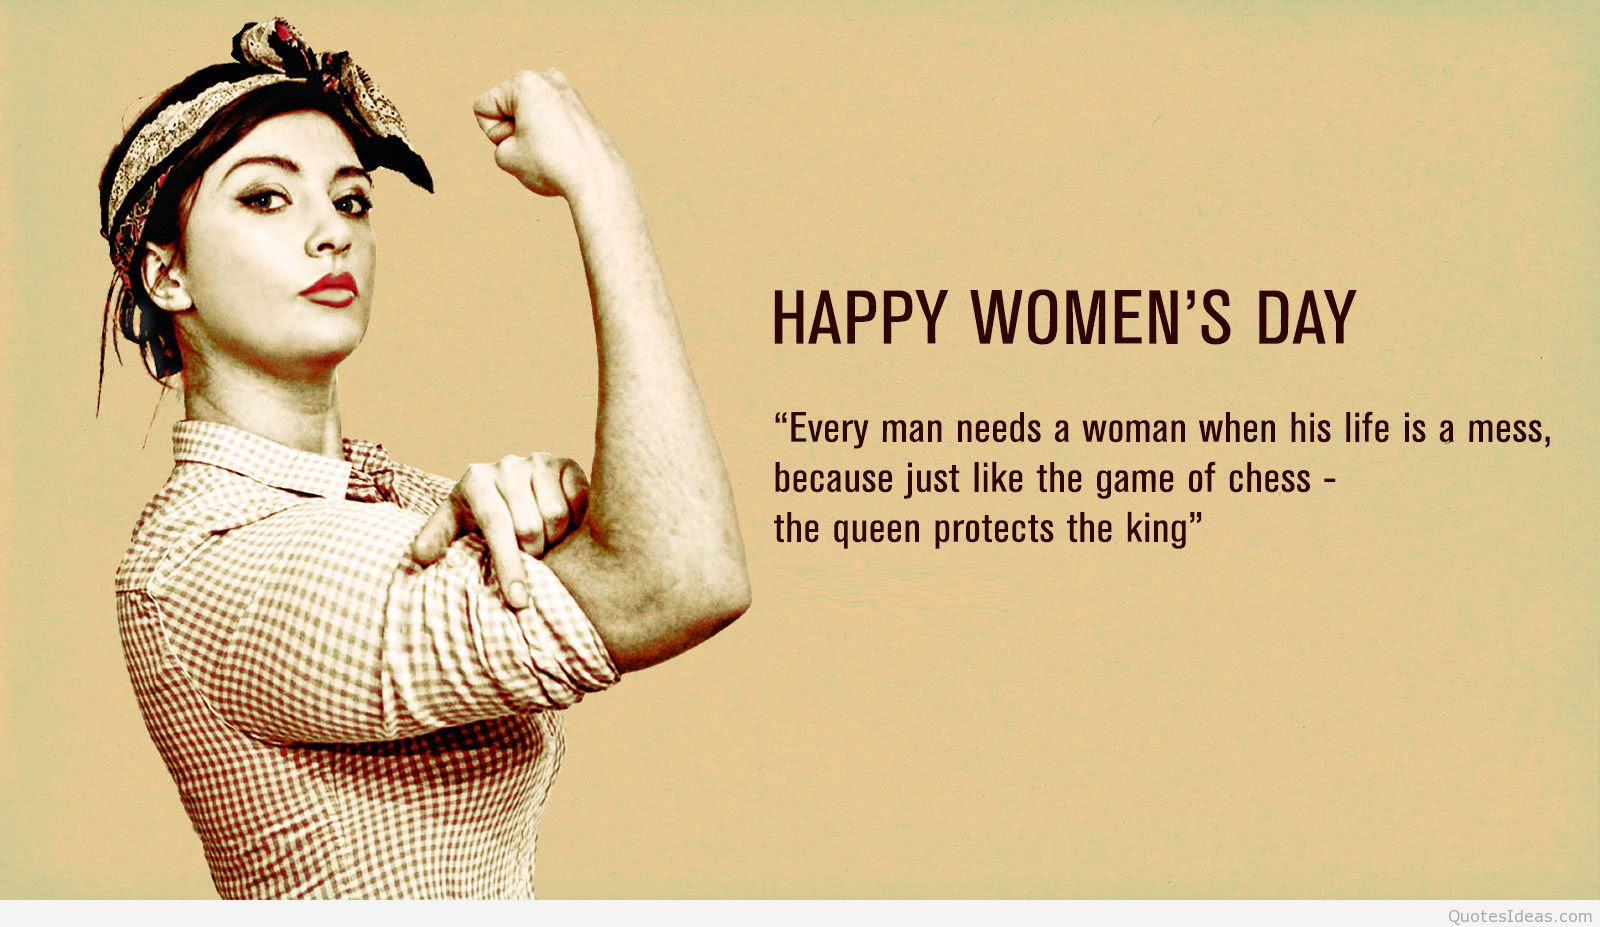 Happy Womens Day Quotes 2018 With Sayings And Images Free For